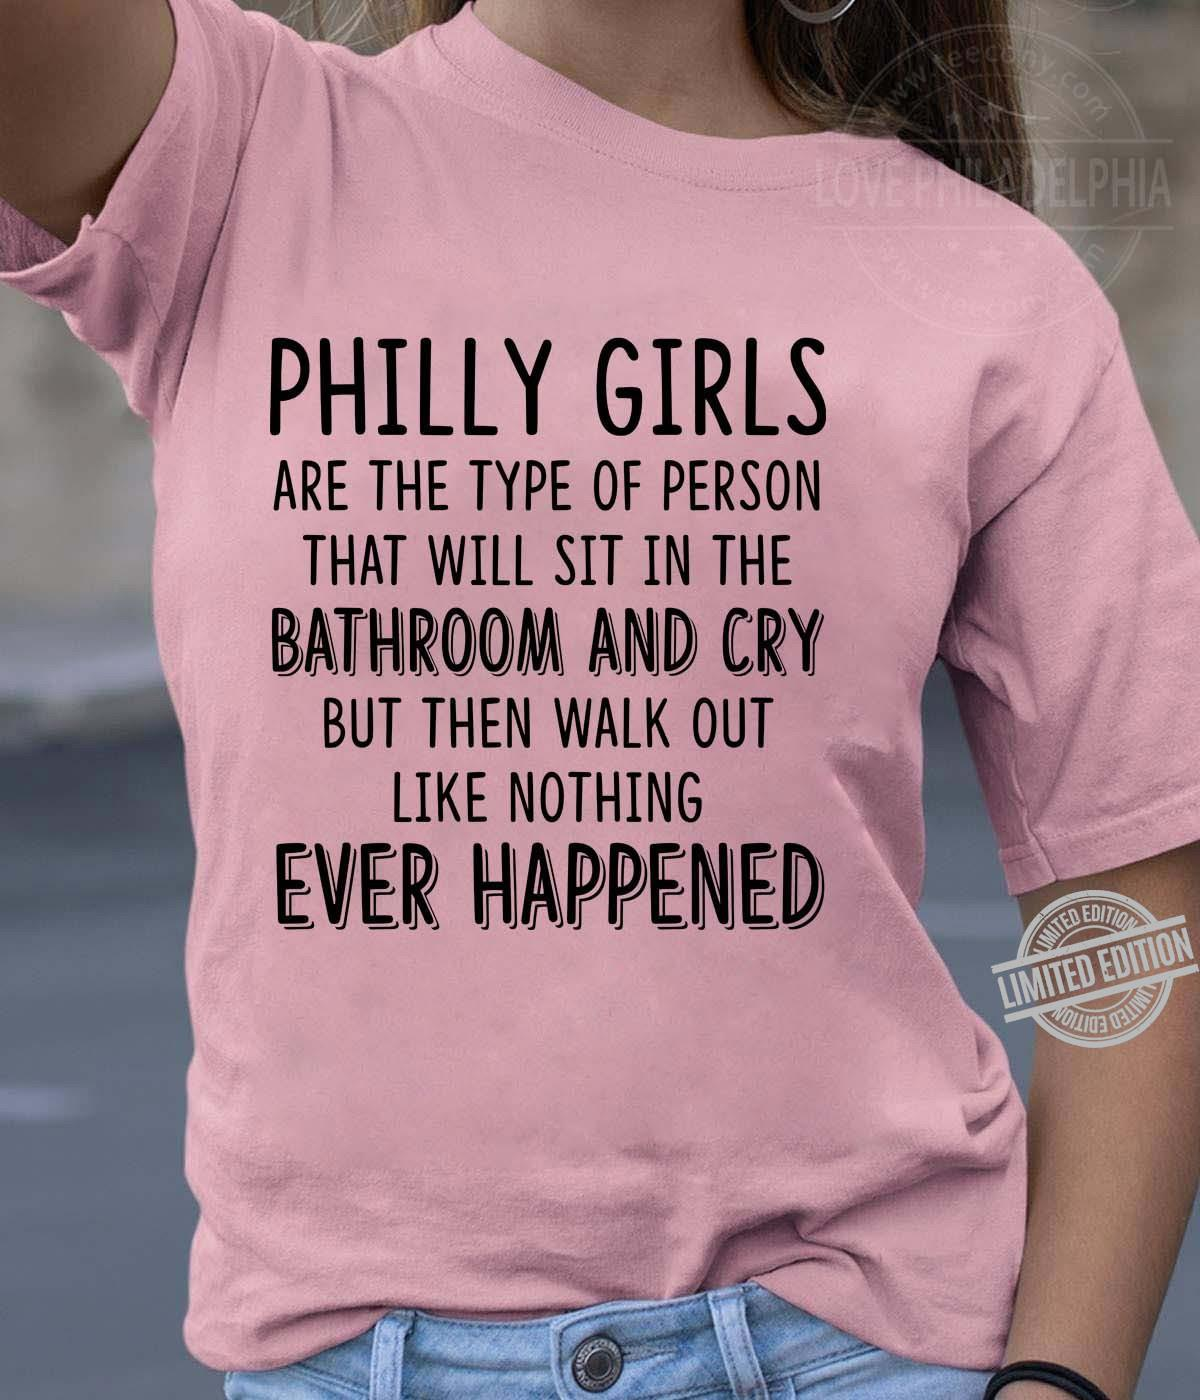 Philly Girls Are The Type Of Person That Will Sit In The Bathroom And Cry Ever Happened Shirt